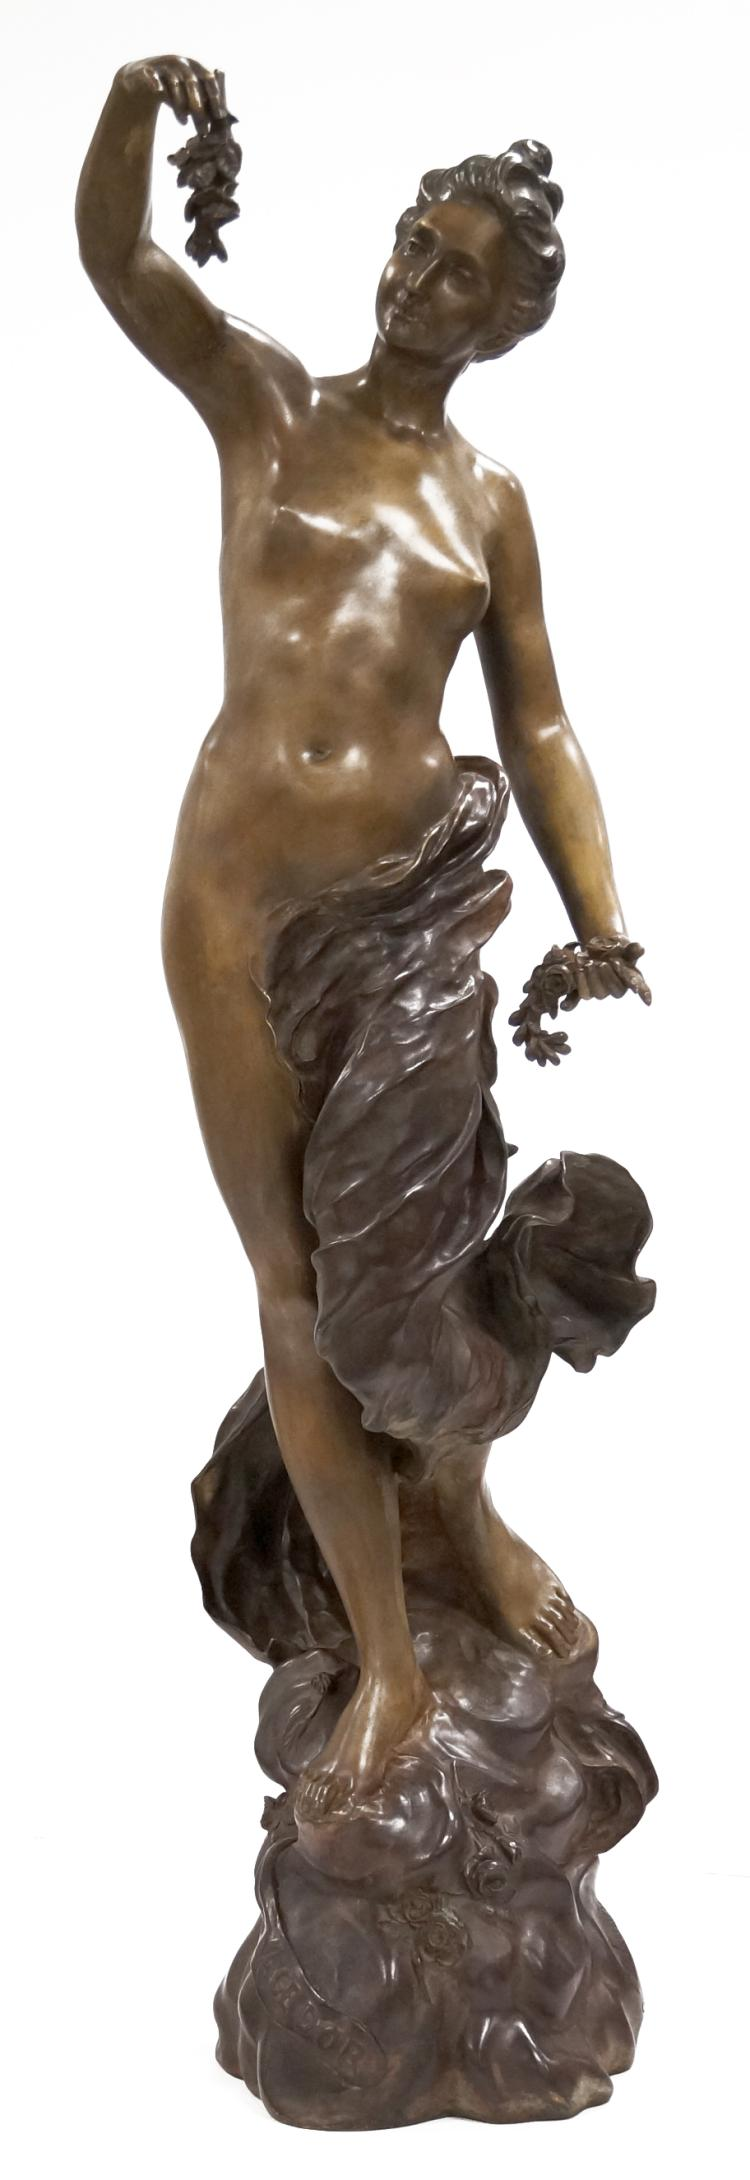 HENRI FUGERE (FRENCH 1872-1944), BRONZE,